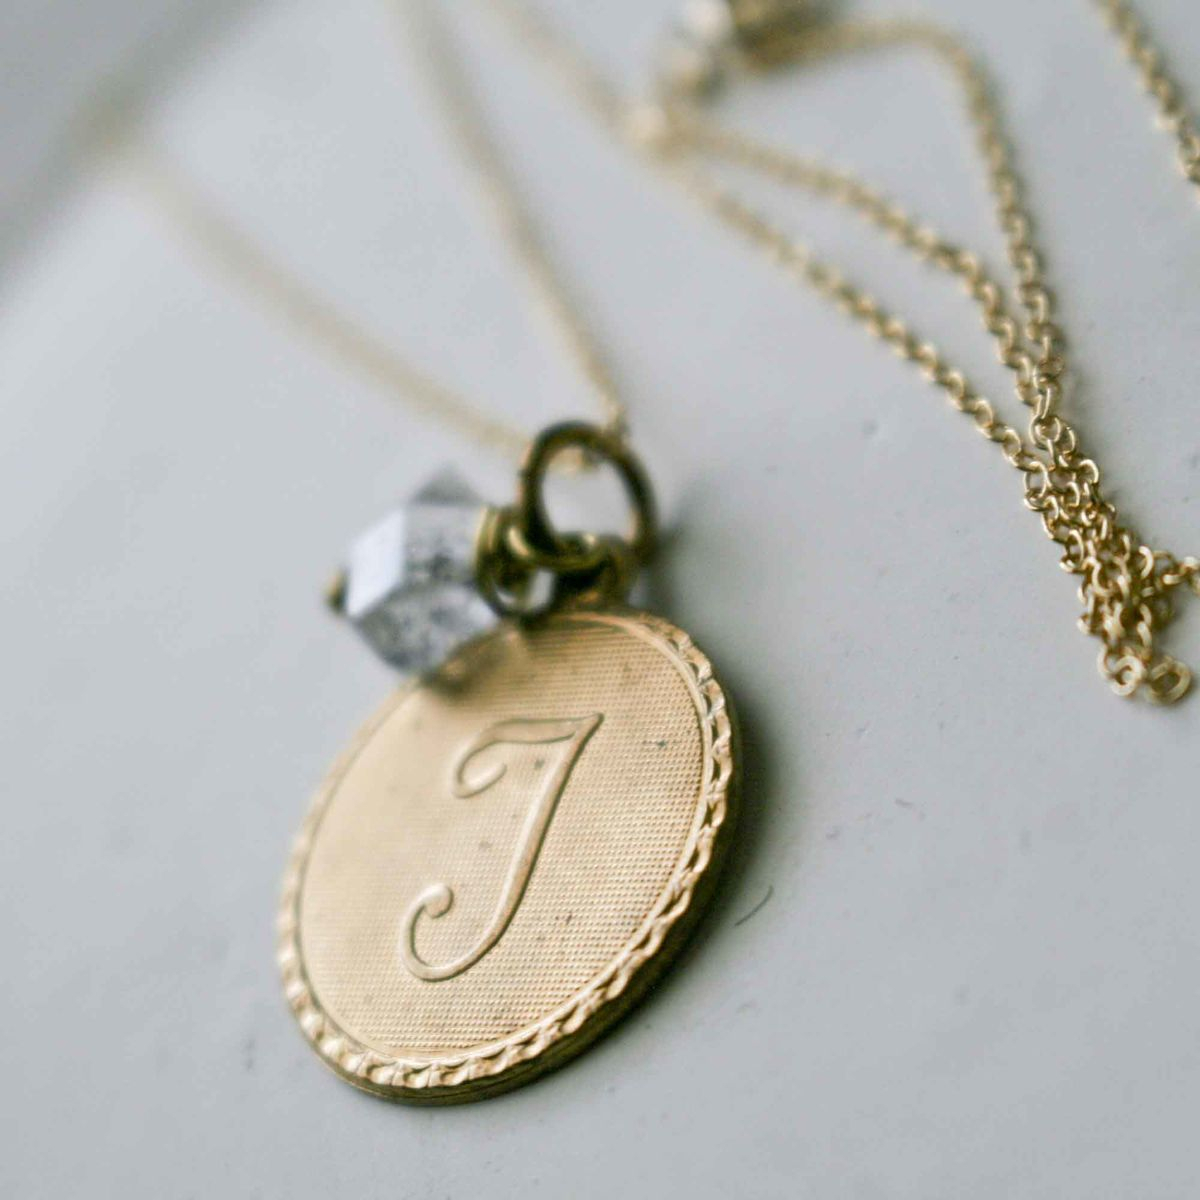 Uppercase Cursive Initial Monogram Letter Round Disc Charm Necklace With Regard To Most Recently Released Letter C Alphabet Locket Element Necklaces (View 7 of 25)